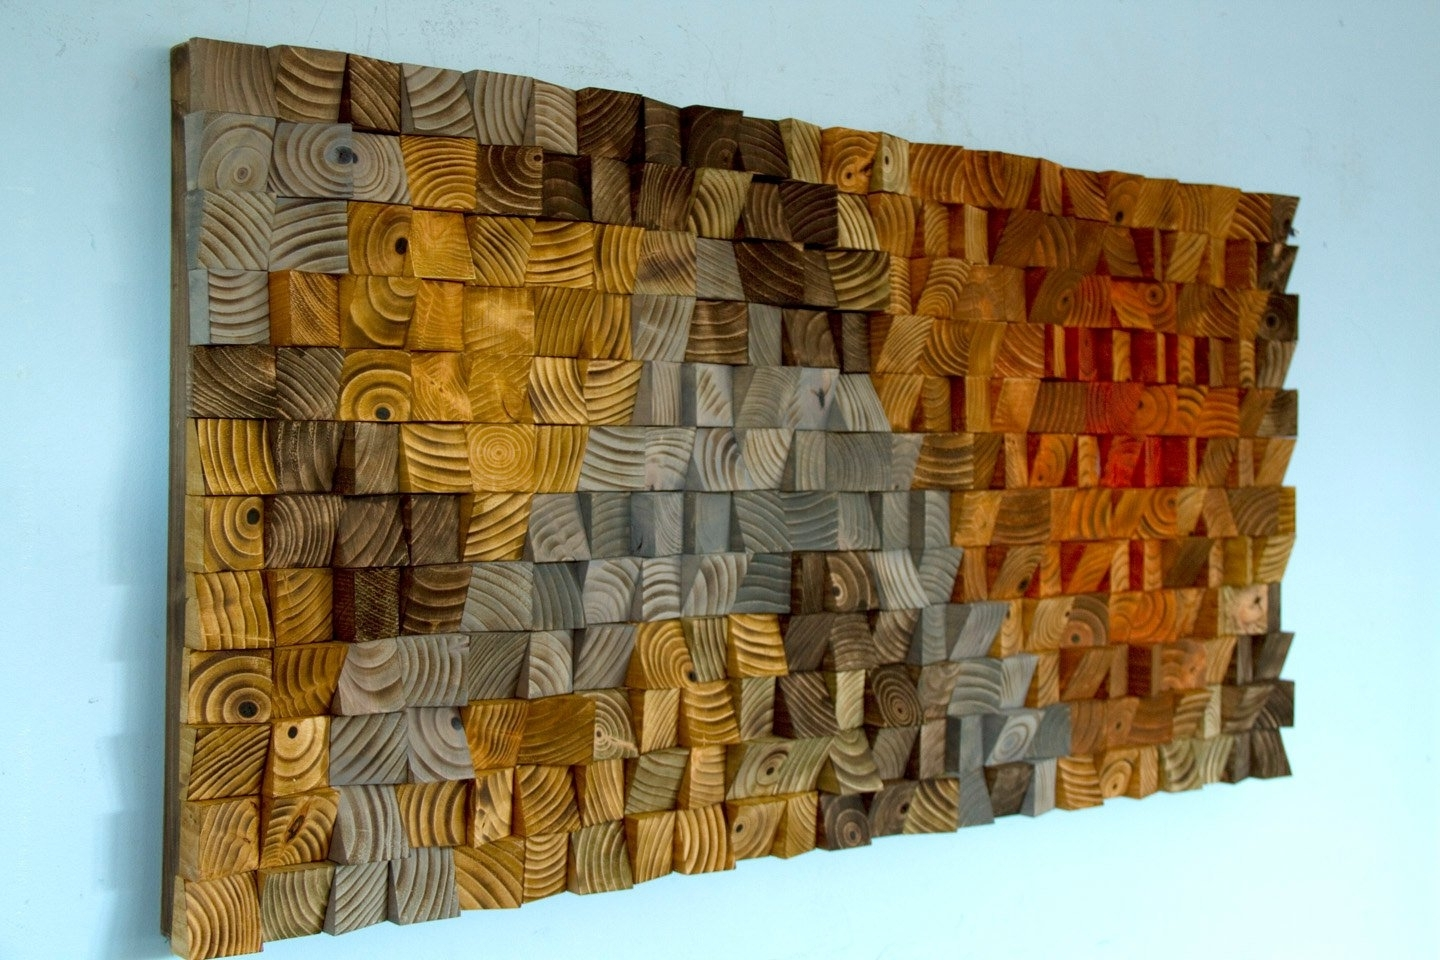 Reclaimed Wood Wall Art Wood Wall Art Sculpture, Wood Art, Wood Wall Within Well Known Wooden Wall Art (View 2 of 15)